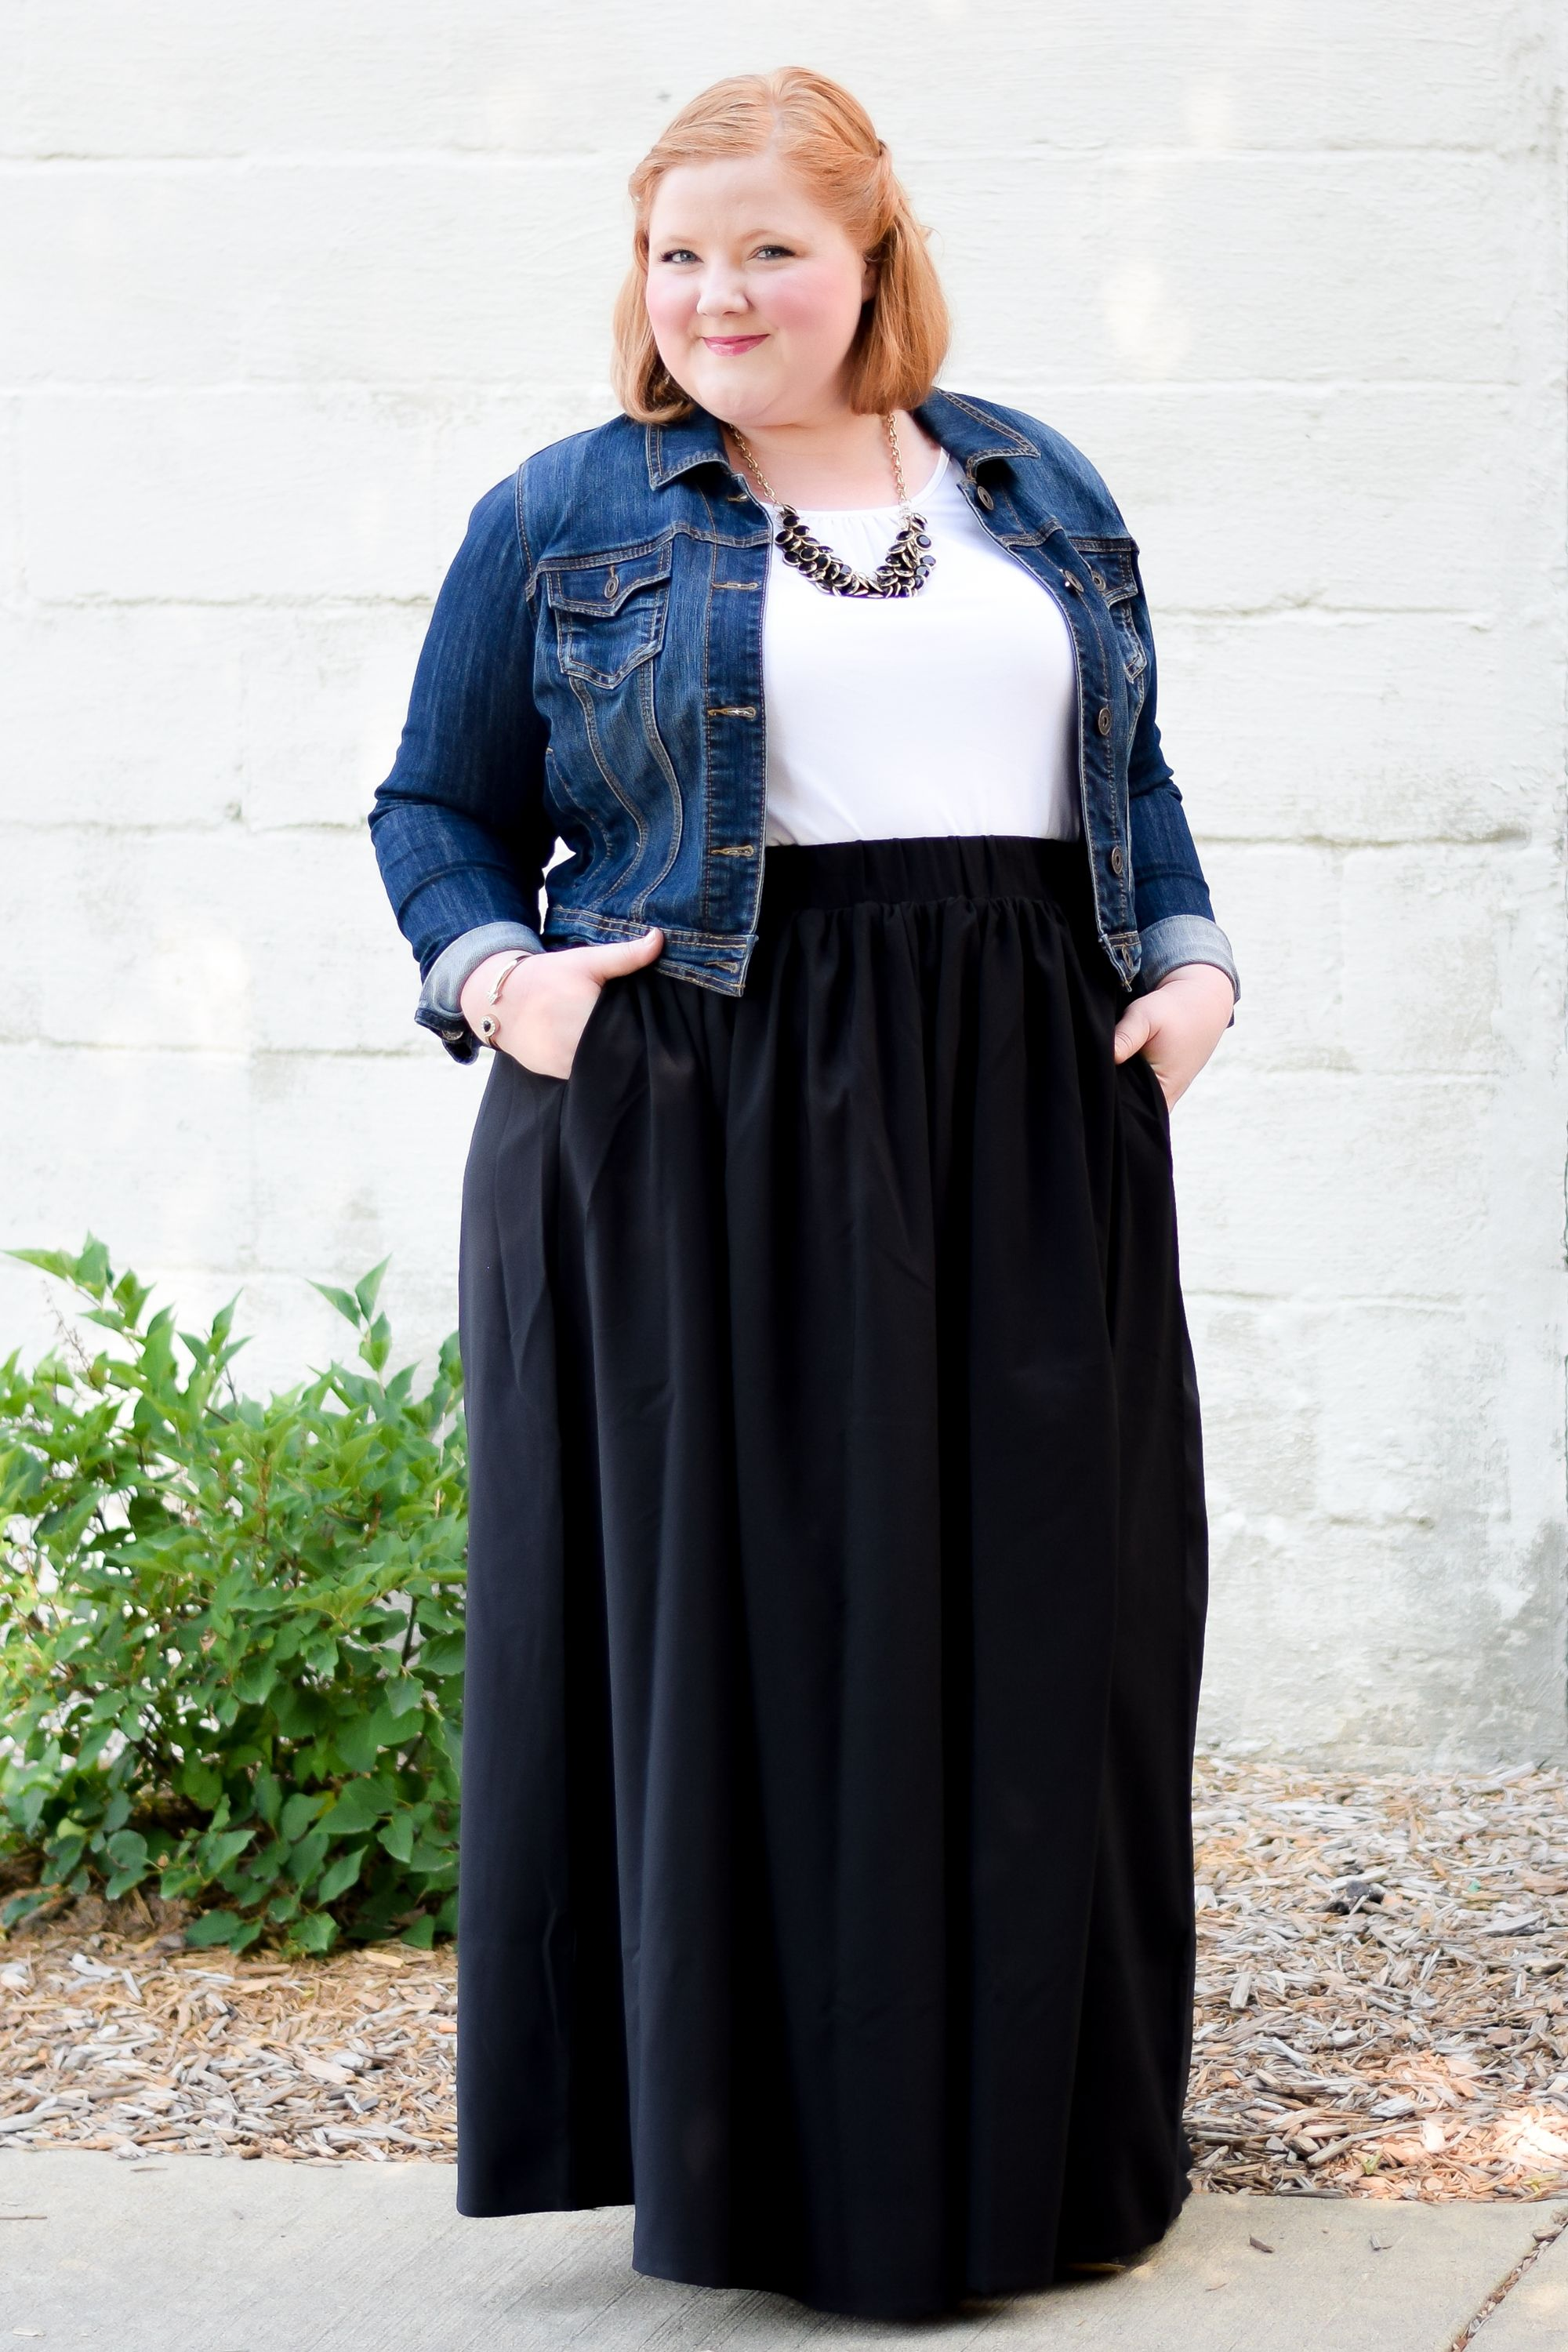 f5e269c462ce1 Four Creative Ways to Wear a Maxi Skirt  introducing the